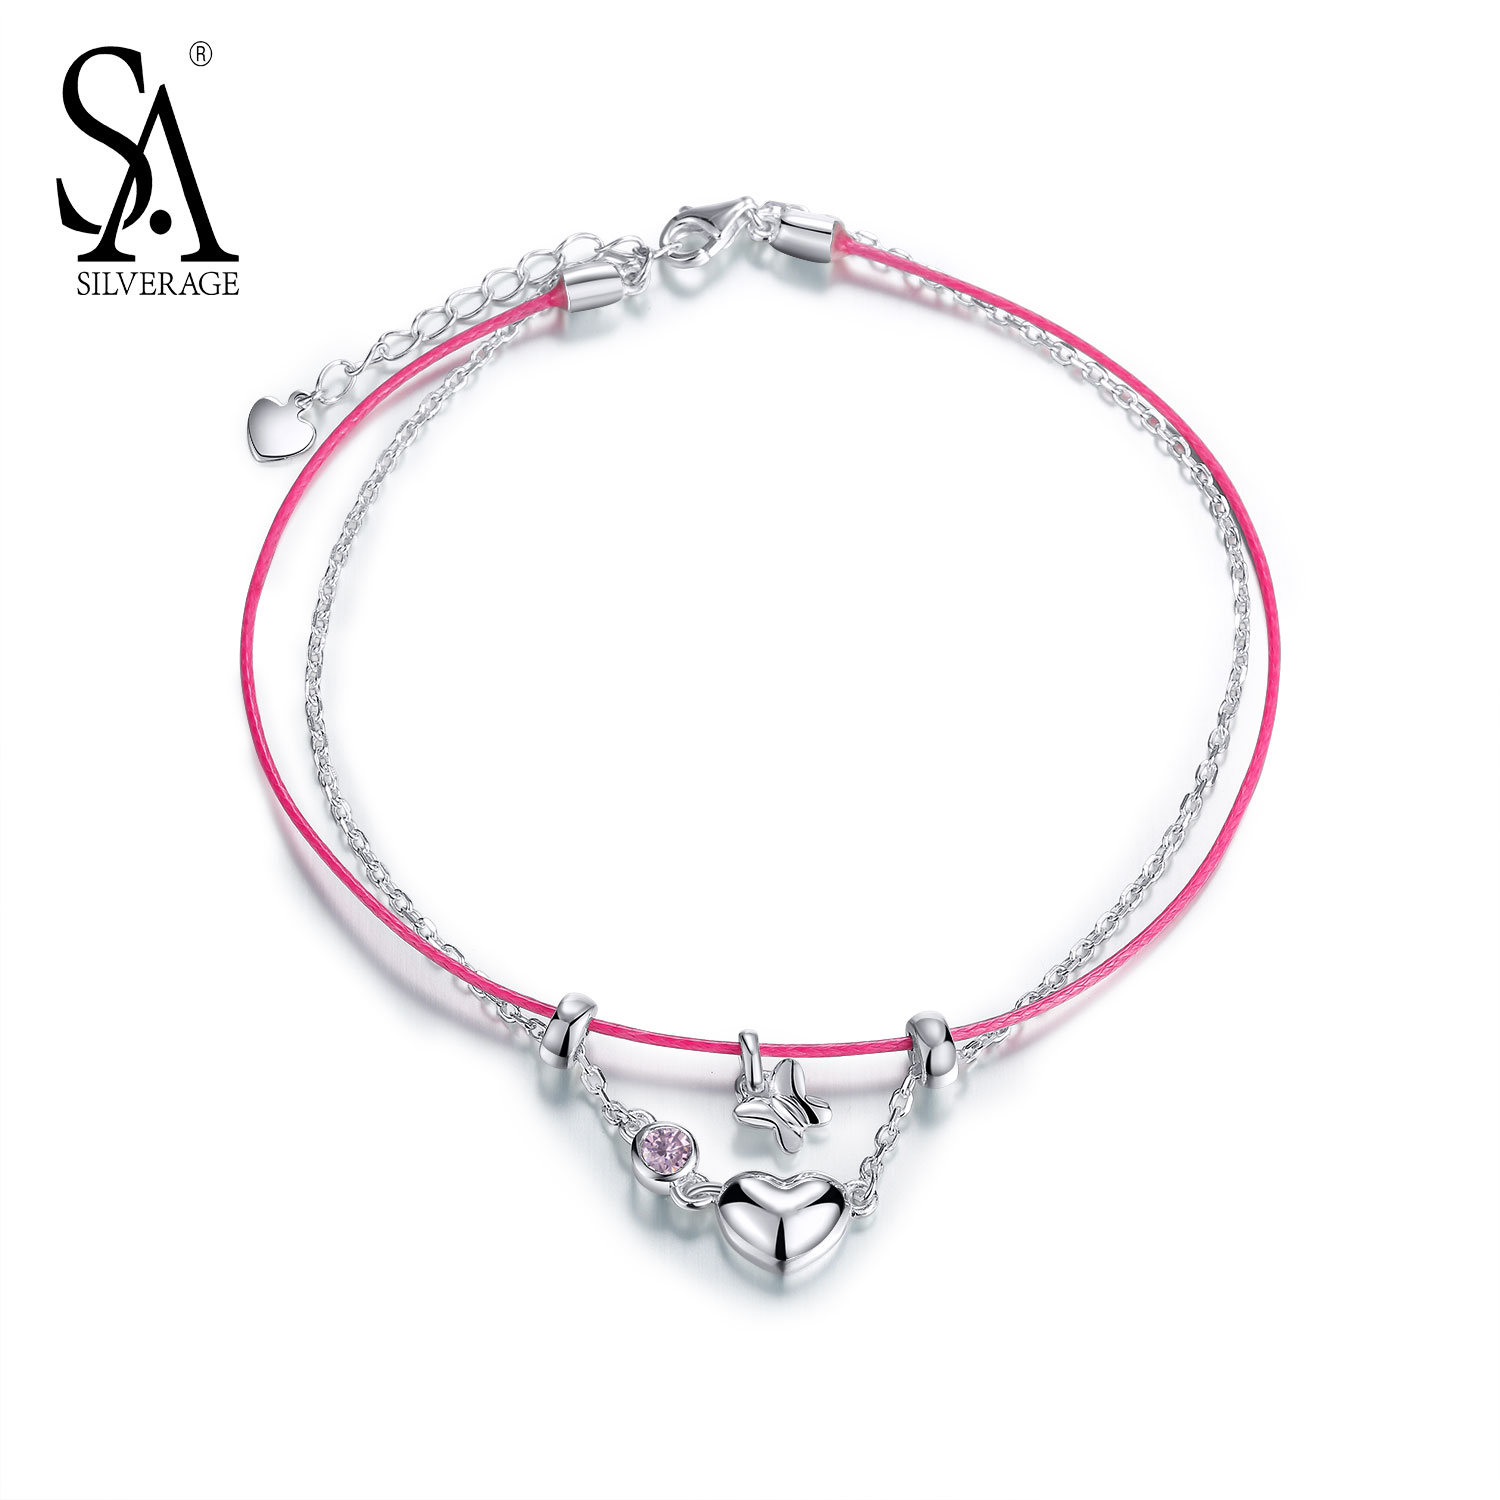 SA SILVERAGE Real 925 Sterling Silver Anklets Star Butterfly Charm Chain Anklet Two Layer Red Rope Women Barefoot Foot girl gift